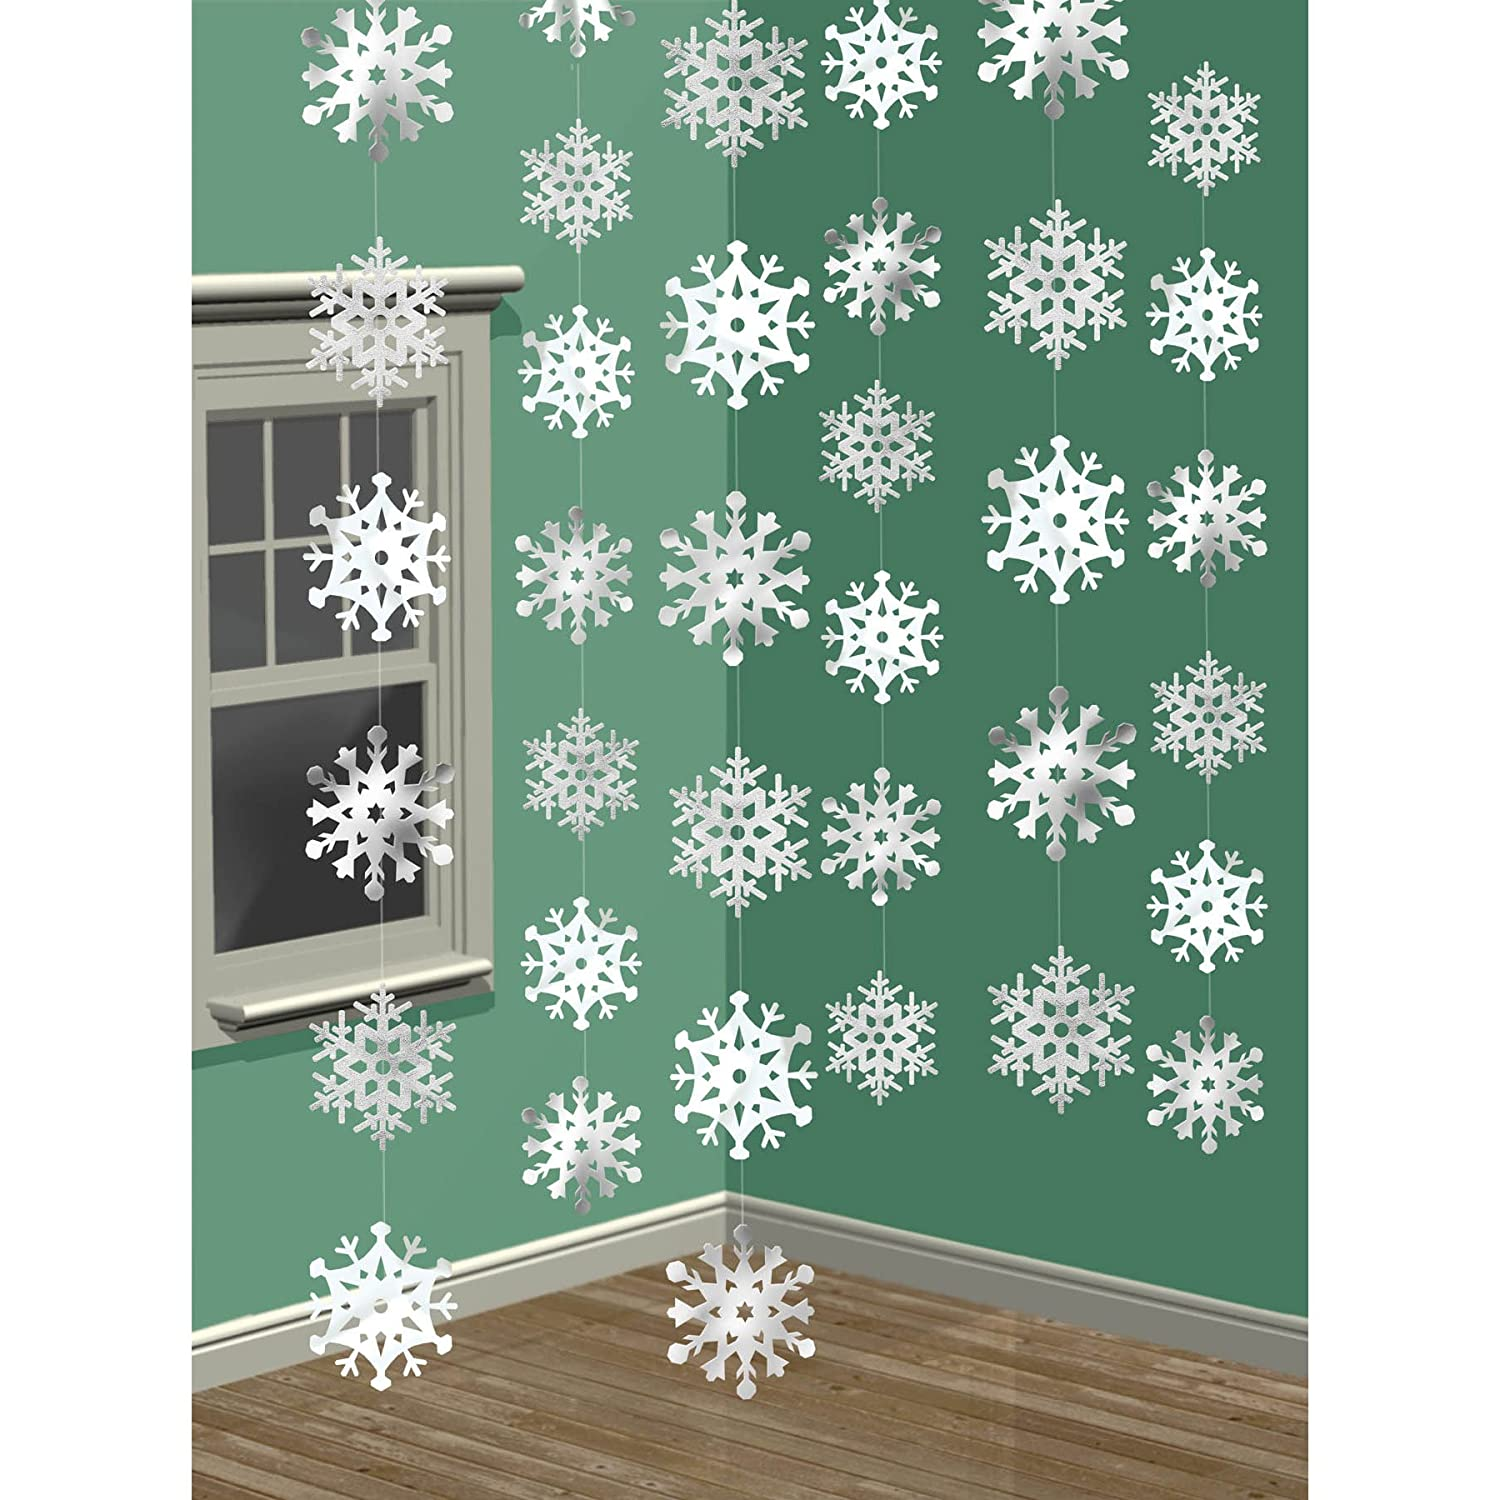 stock with backdrop christmas wooden decorations your room a brown outdoor photo snowflake decor against for text